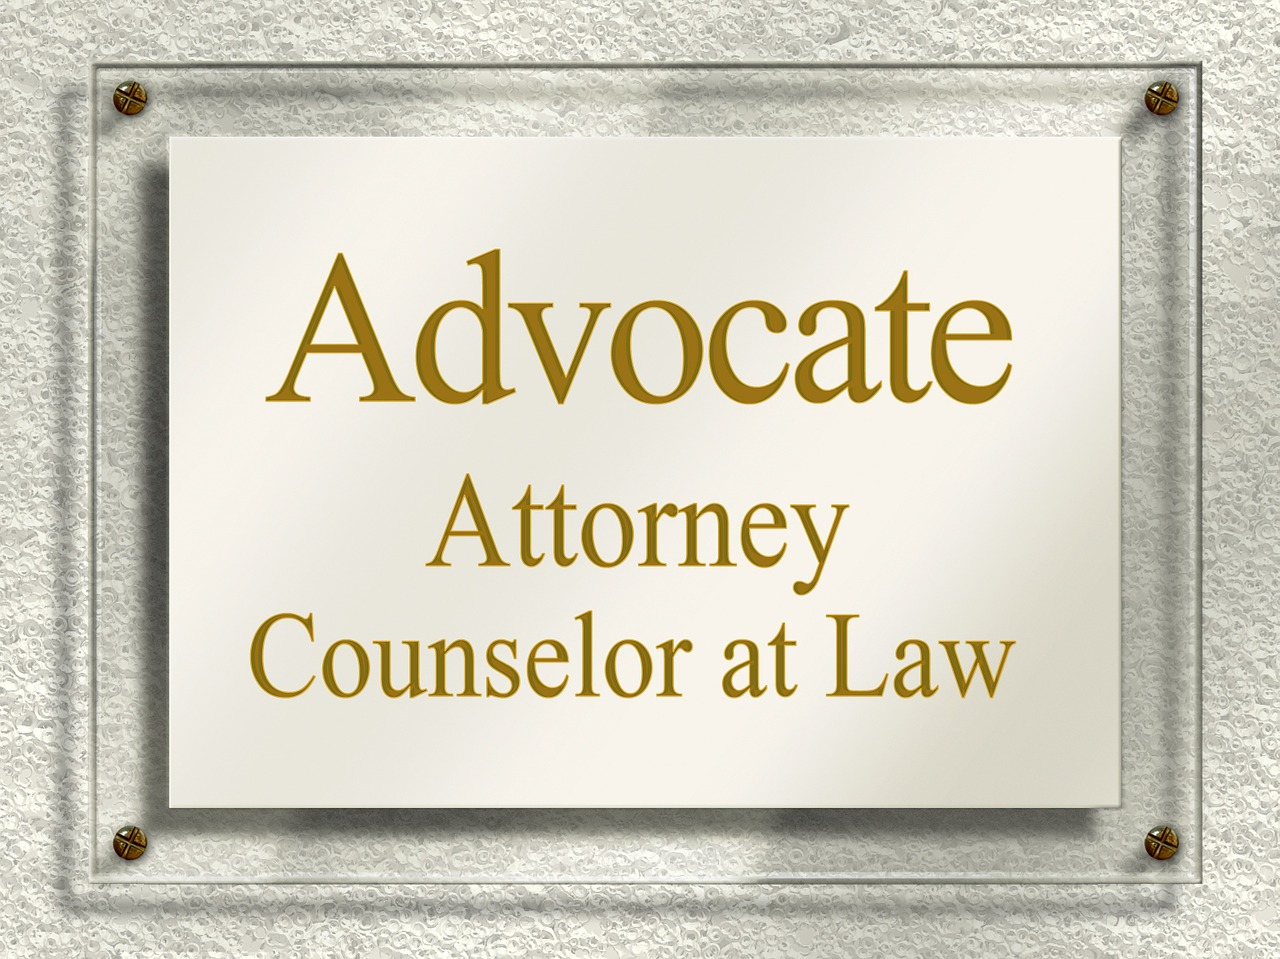 Finding an Attorney for a Small Business